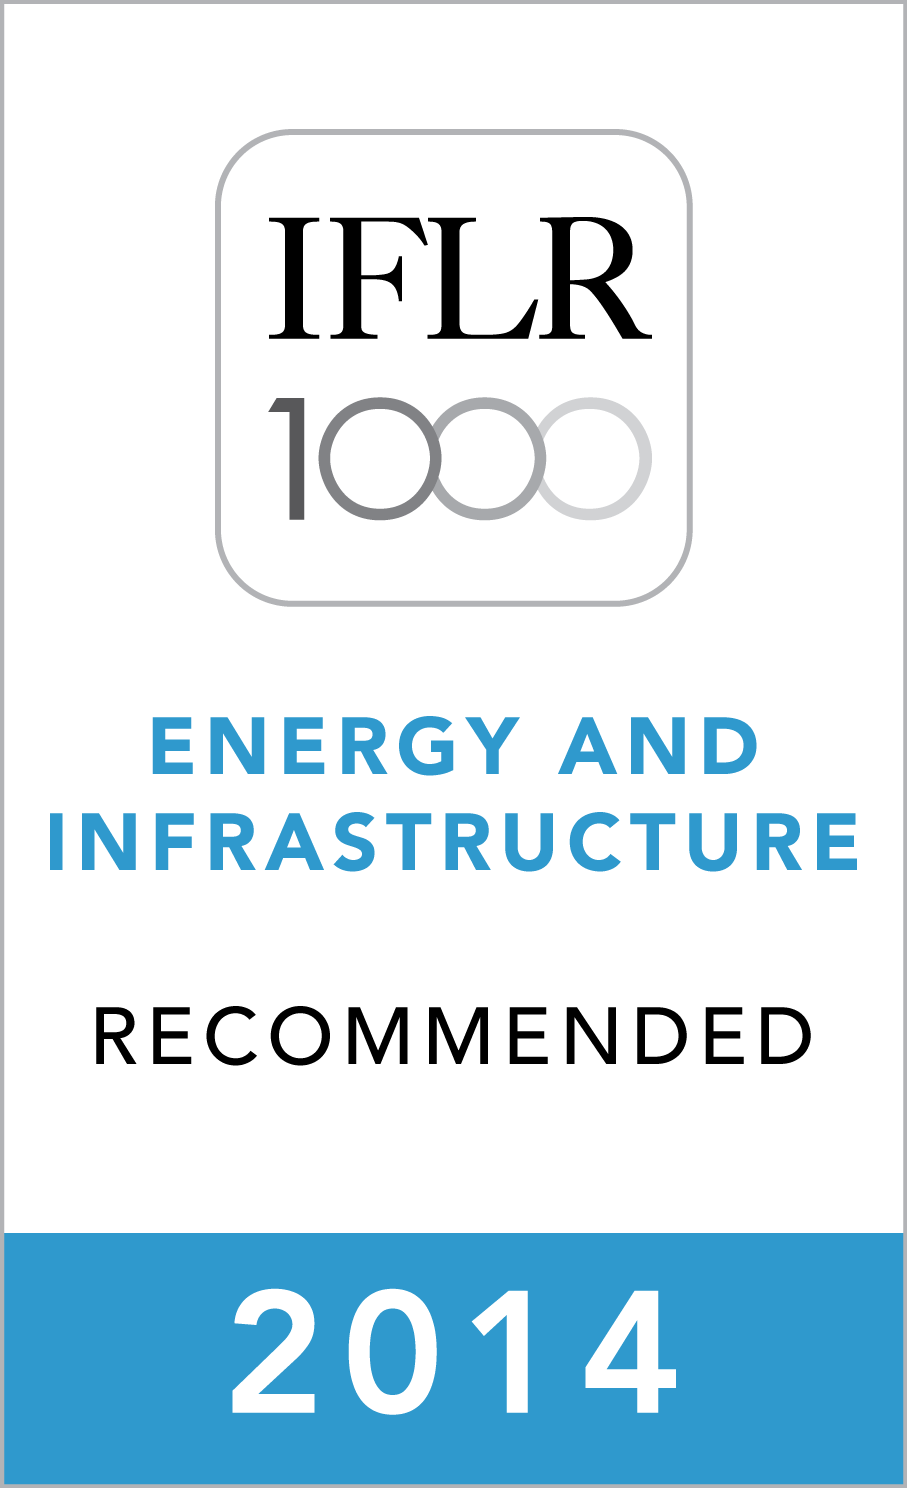 MG ADVOGADOS is a recommended firm by IFLR 1000 for Energy and Infrastructure